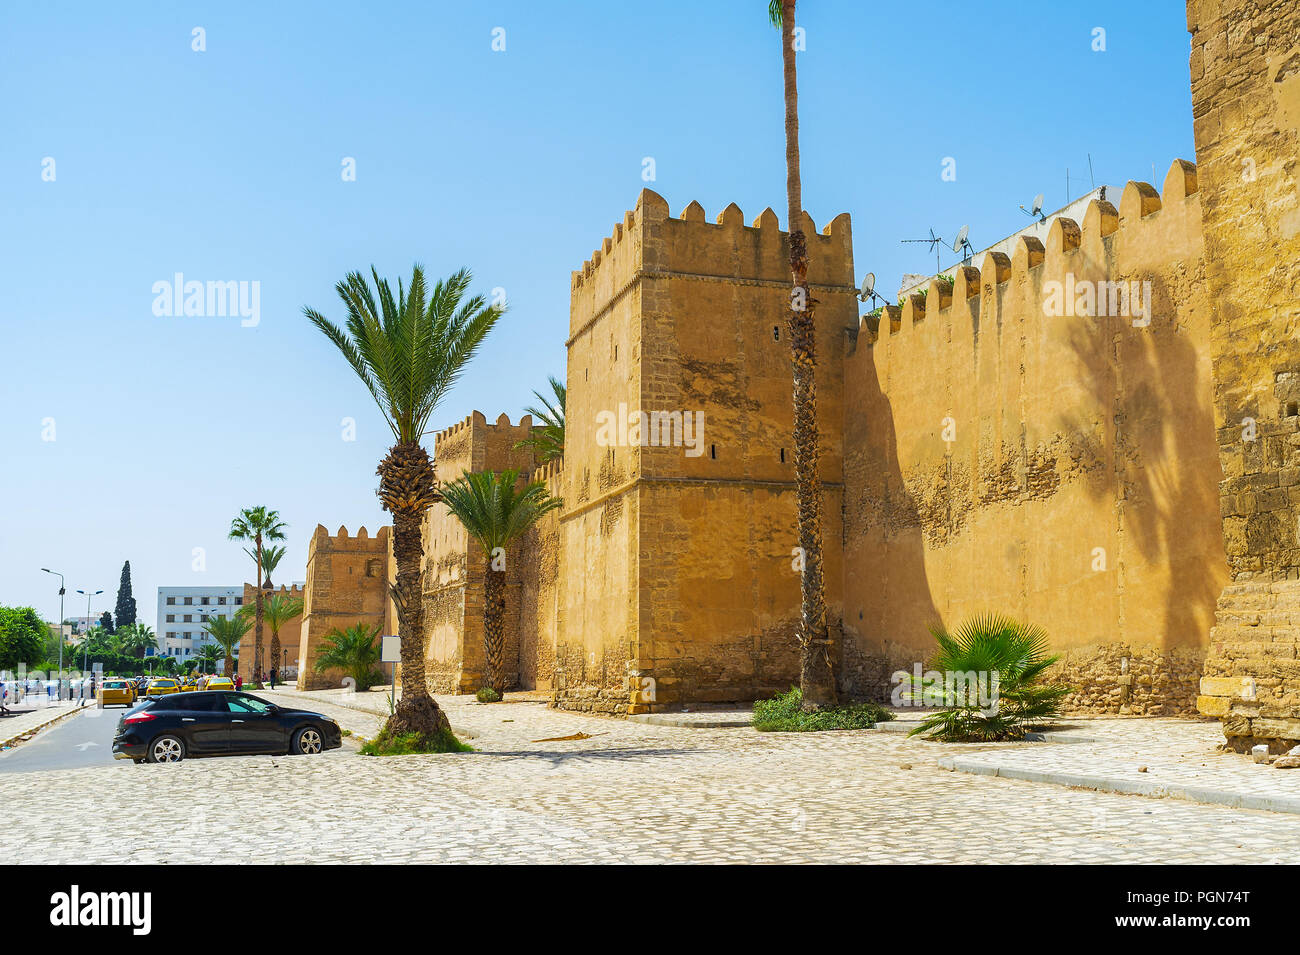 The medieval ramparts of Sfax Medina with numerous towers and battlements, Tunisia. - Stock Image